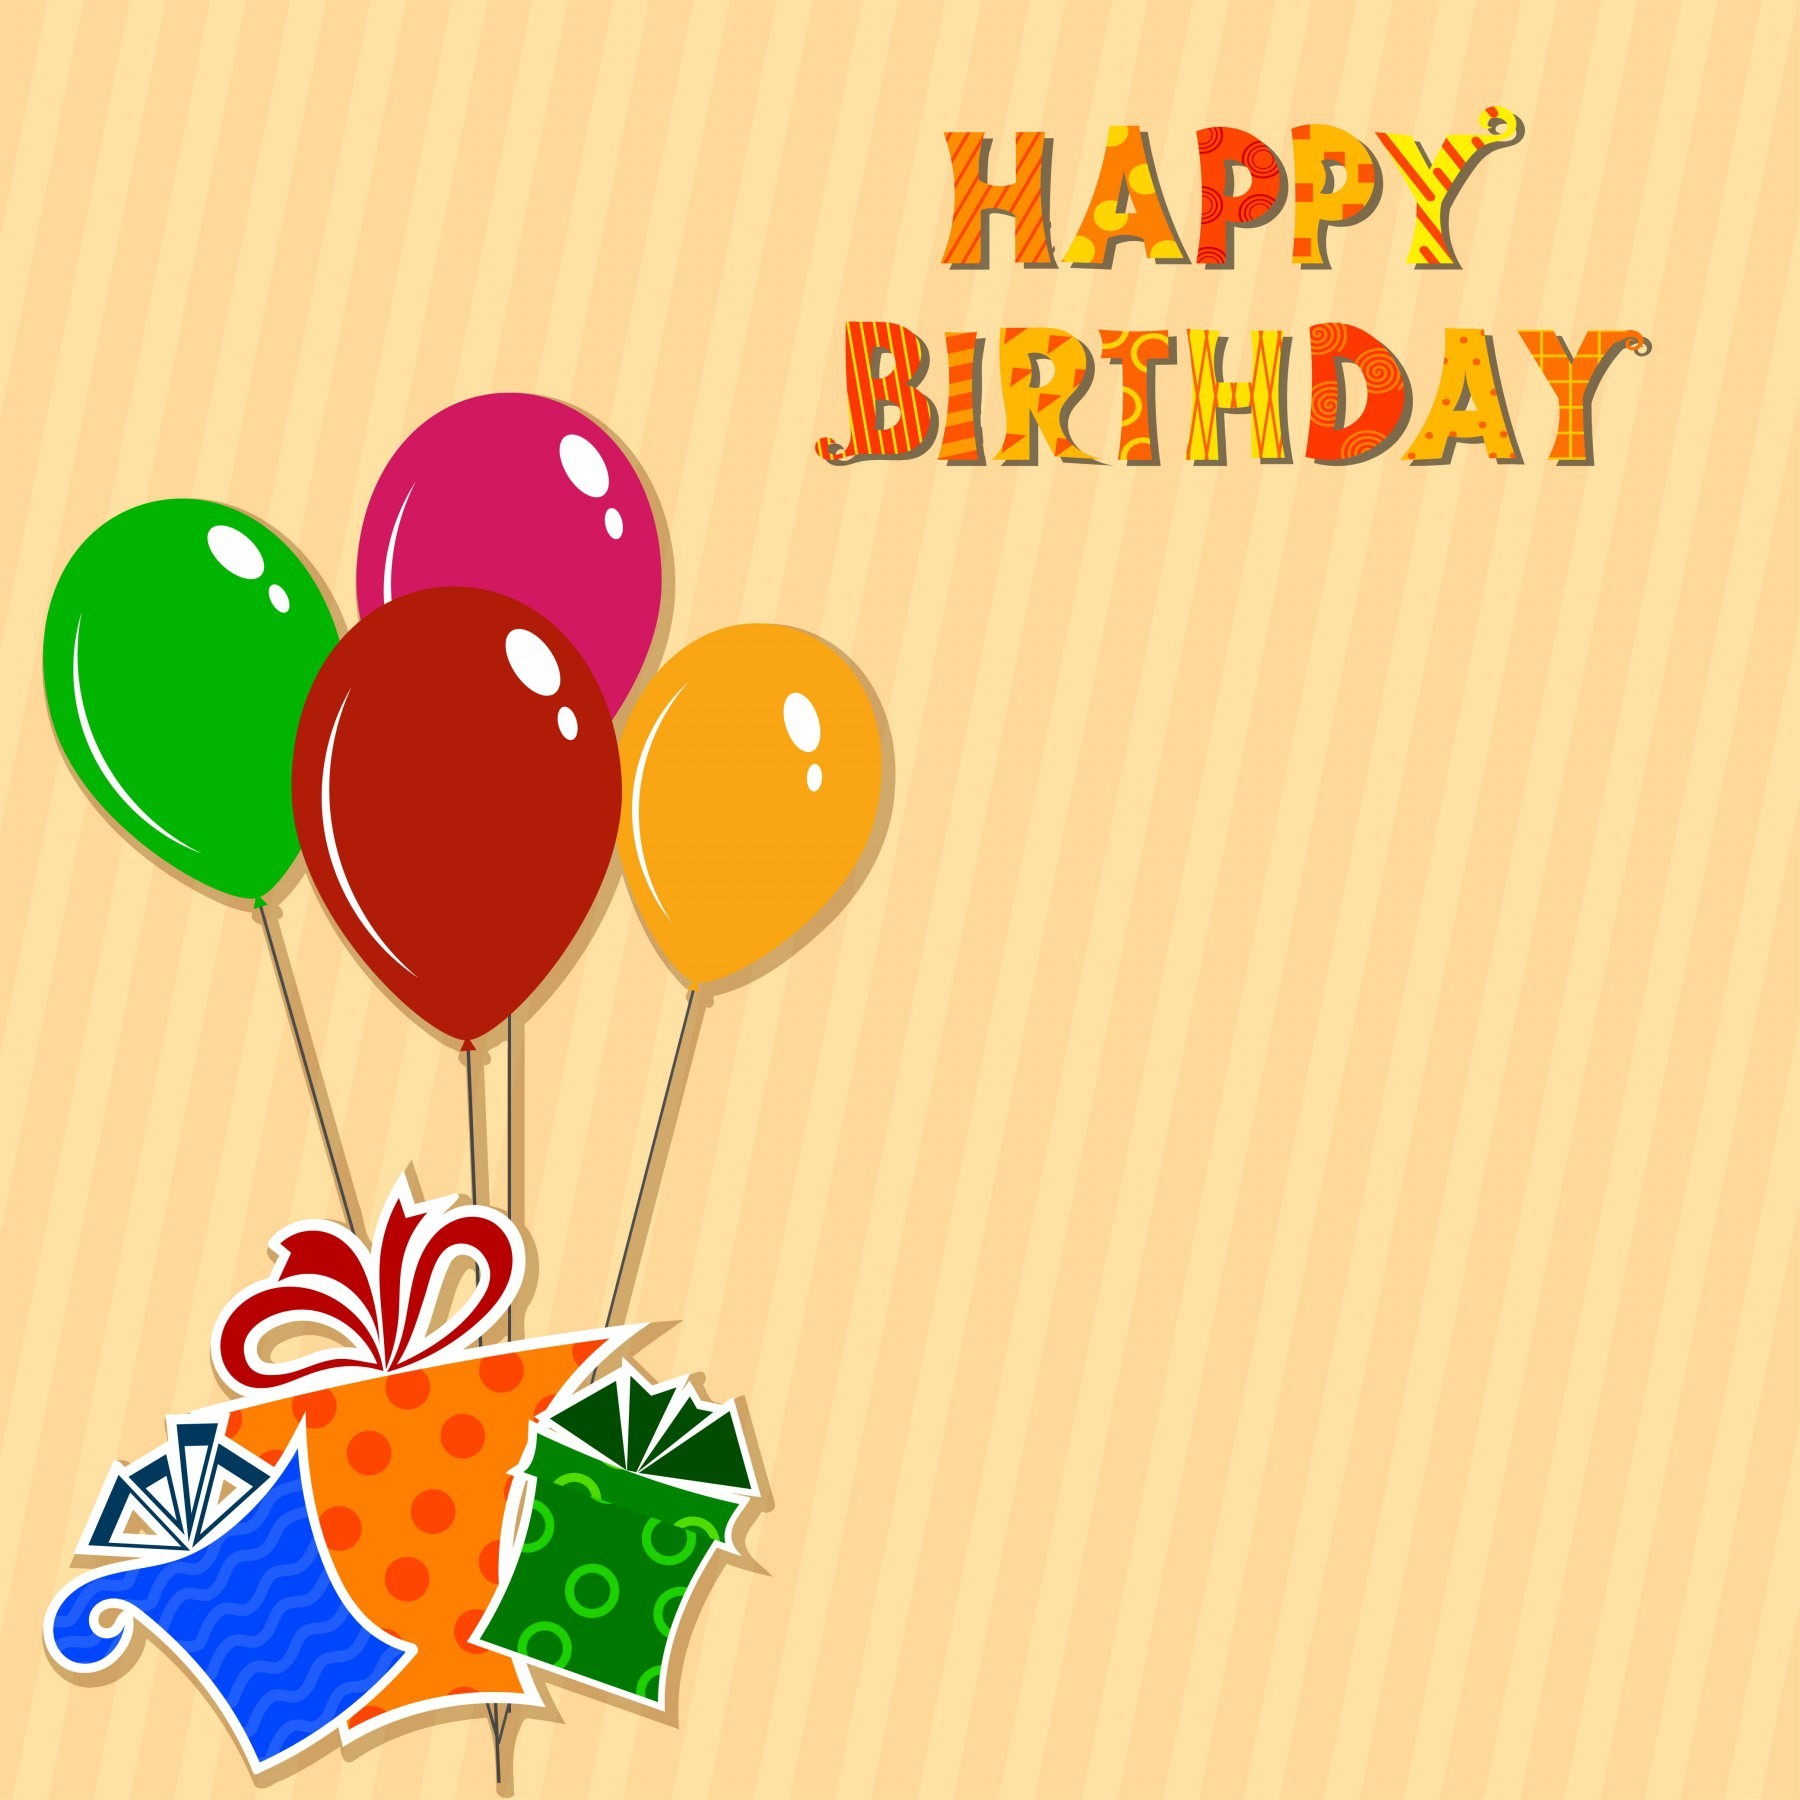 birthday greetings background image ; Birthday-Cards-Background-Images-5